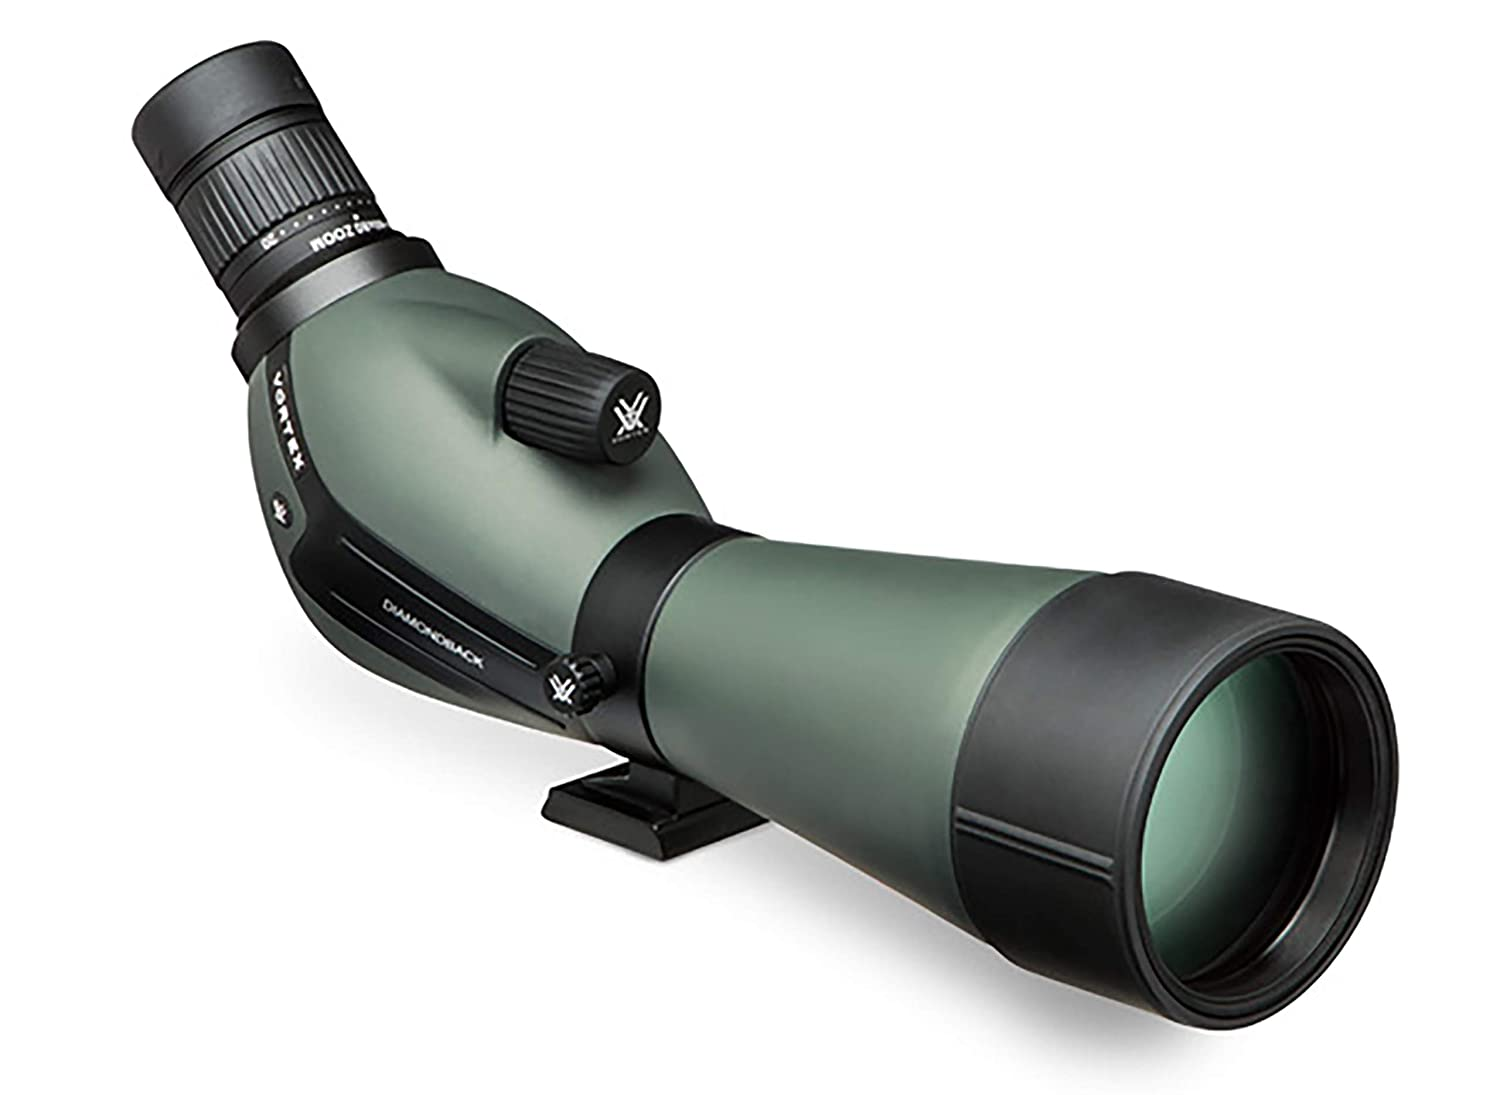 Telescopio terrestre Vortex Optics 20-60x80 angled xmp